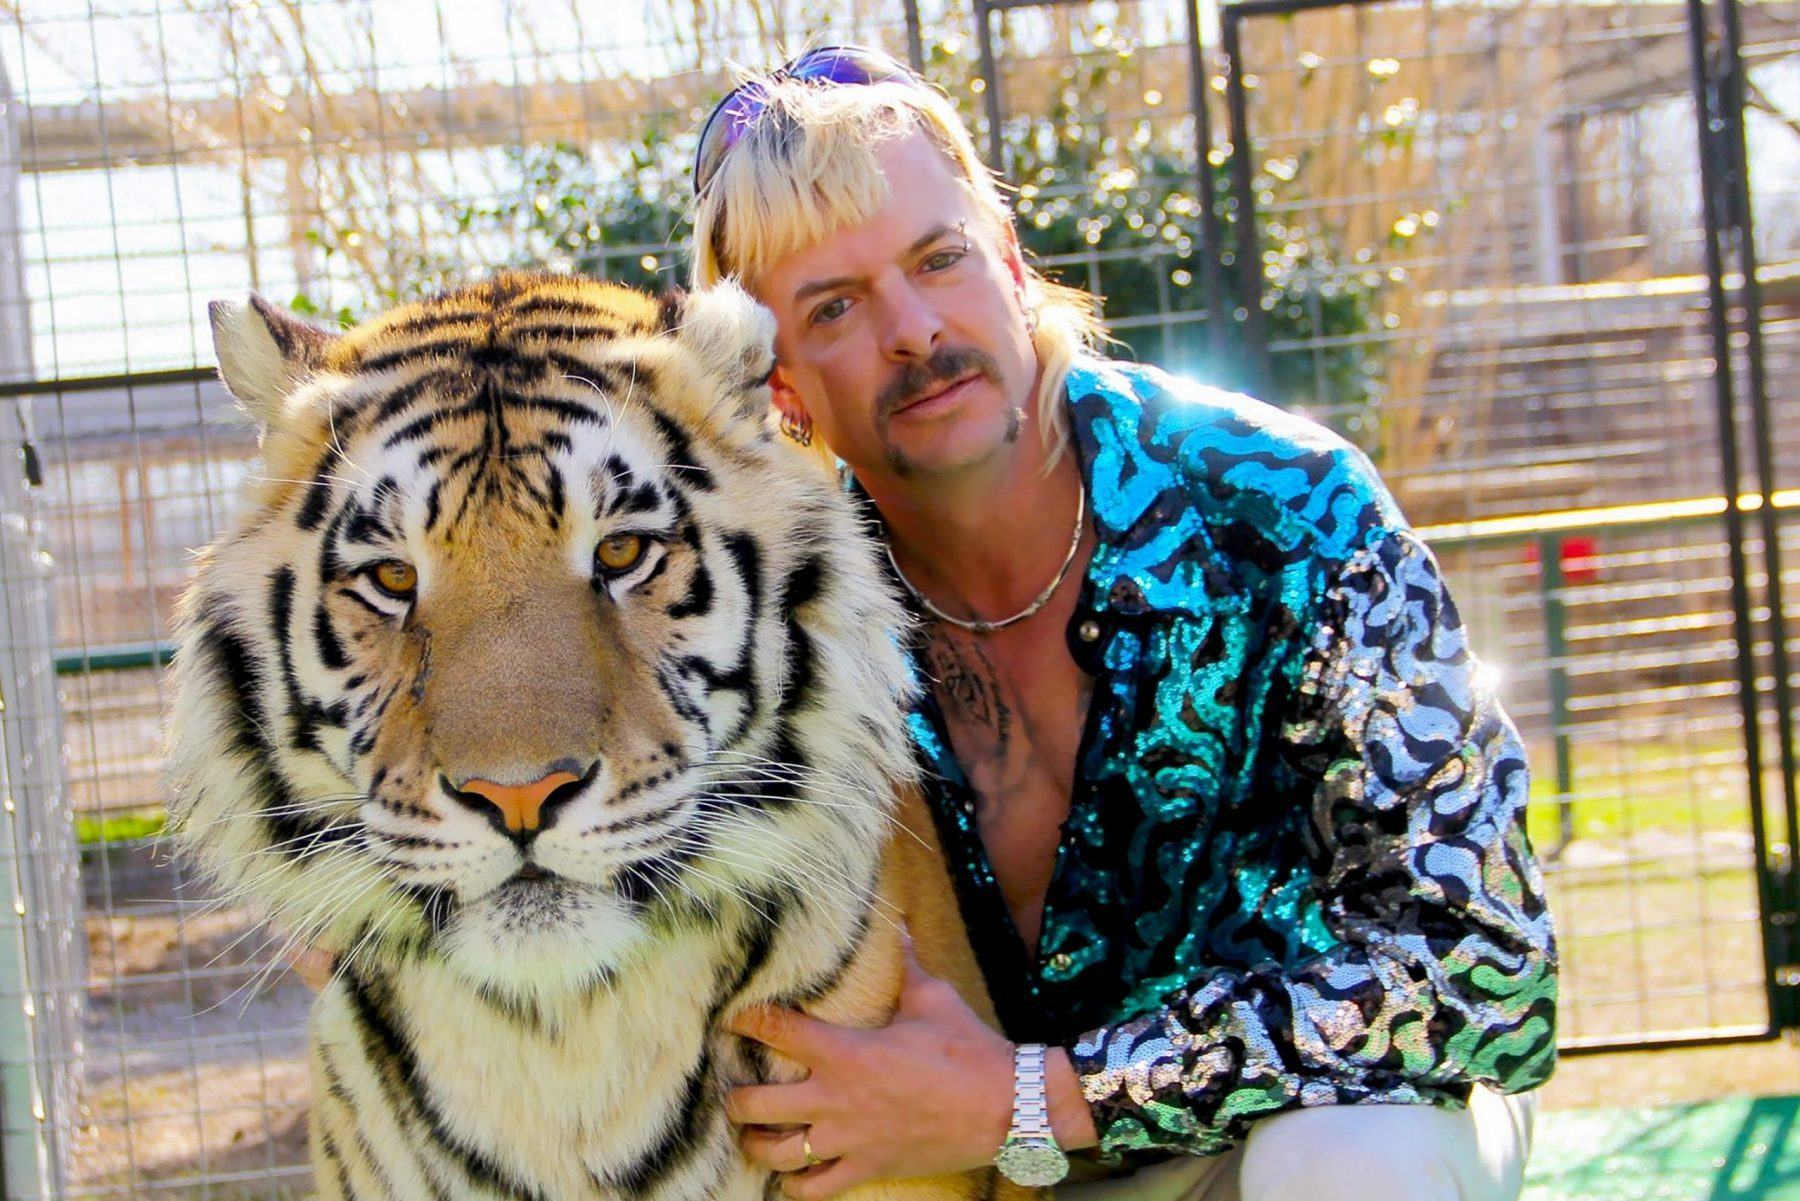 Screenshot of Joe Exotic from Netflix's Tiger King